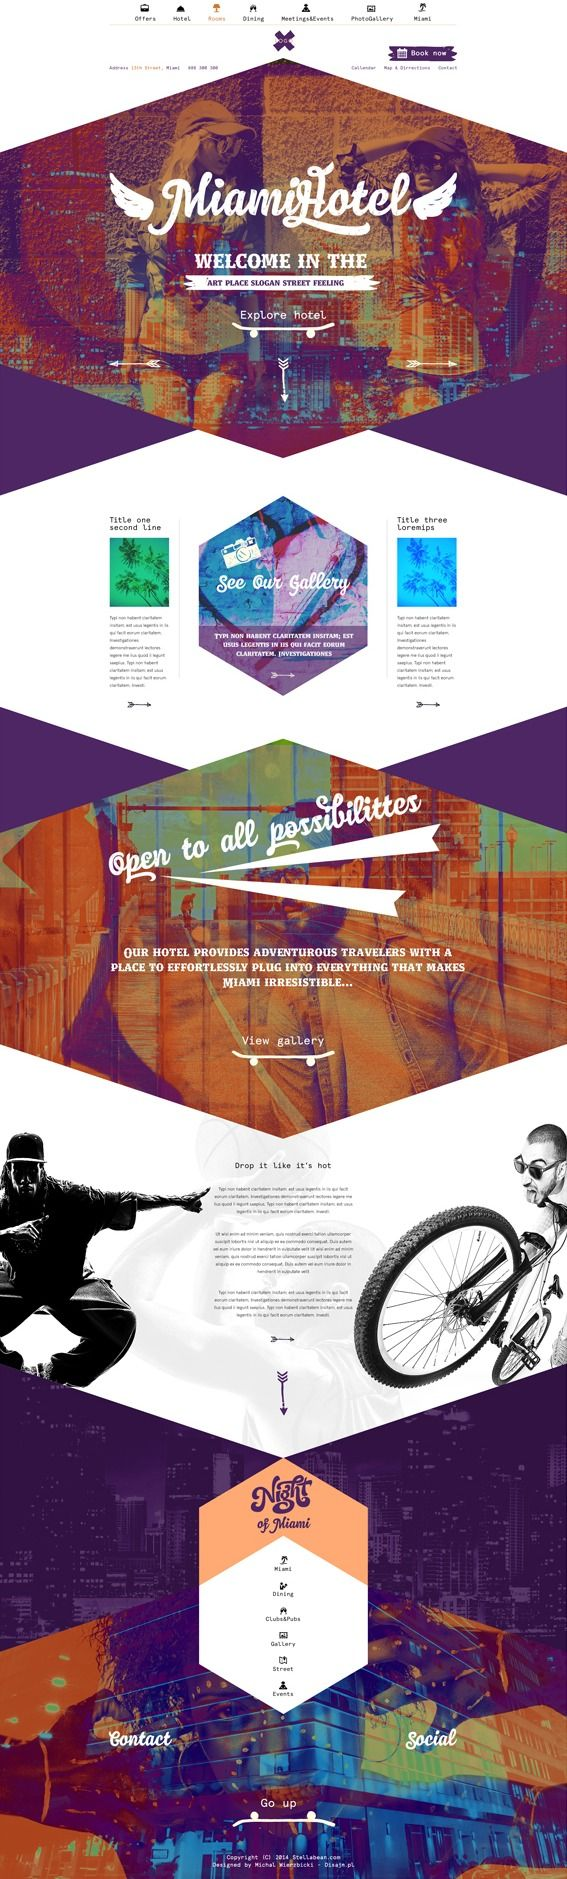 Unique Web Design, Miami Hotel #WebDesign #Design By Michal Wierzbicki Lublin, Poland